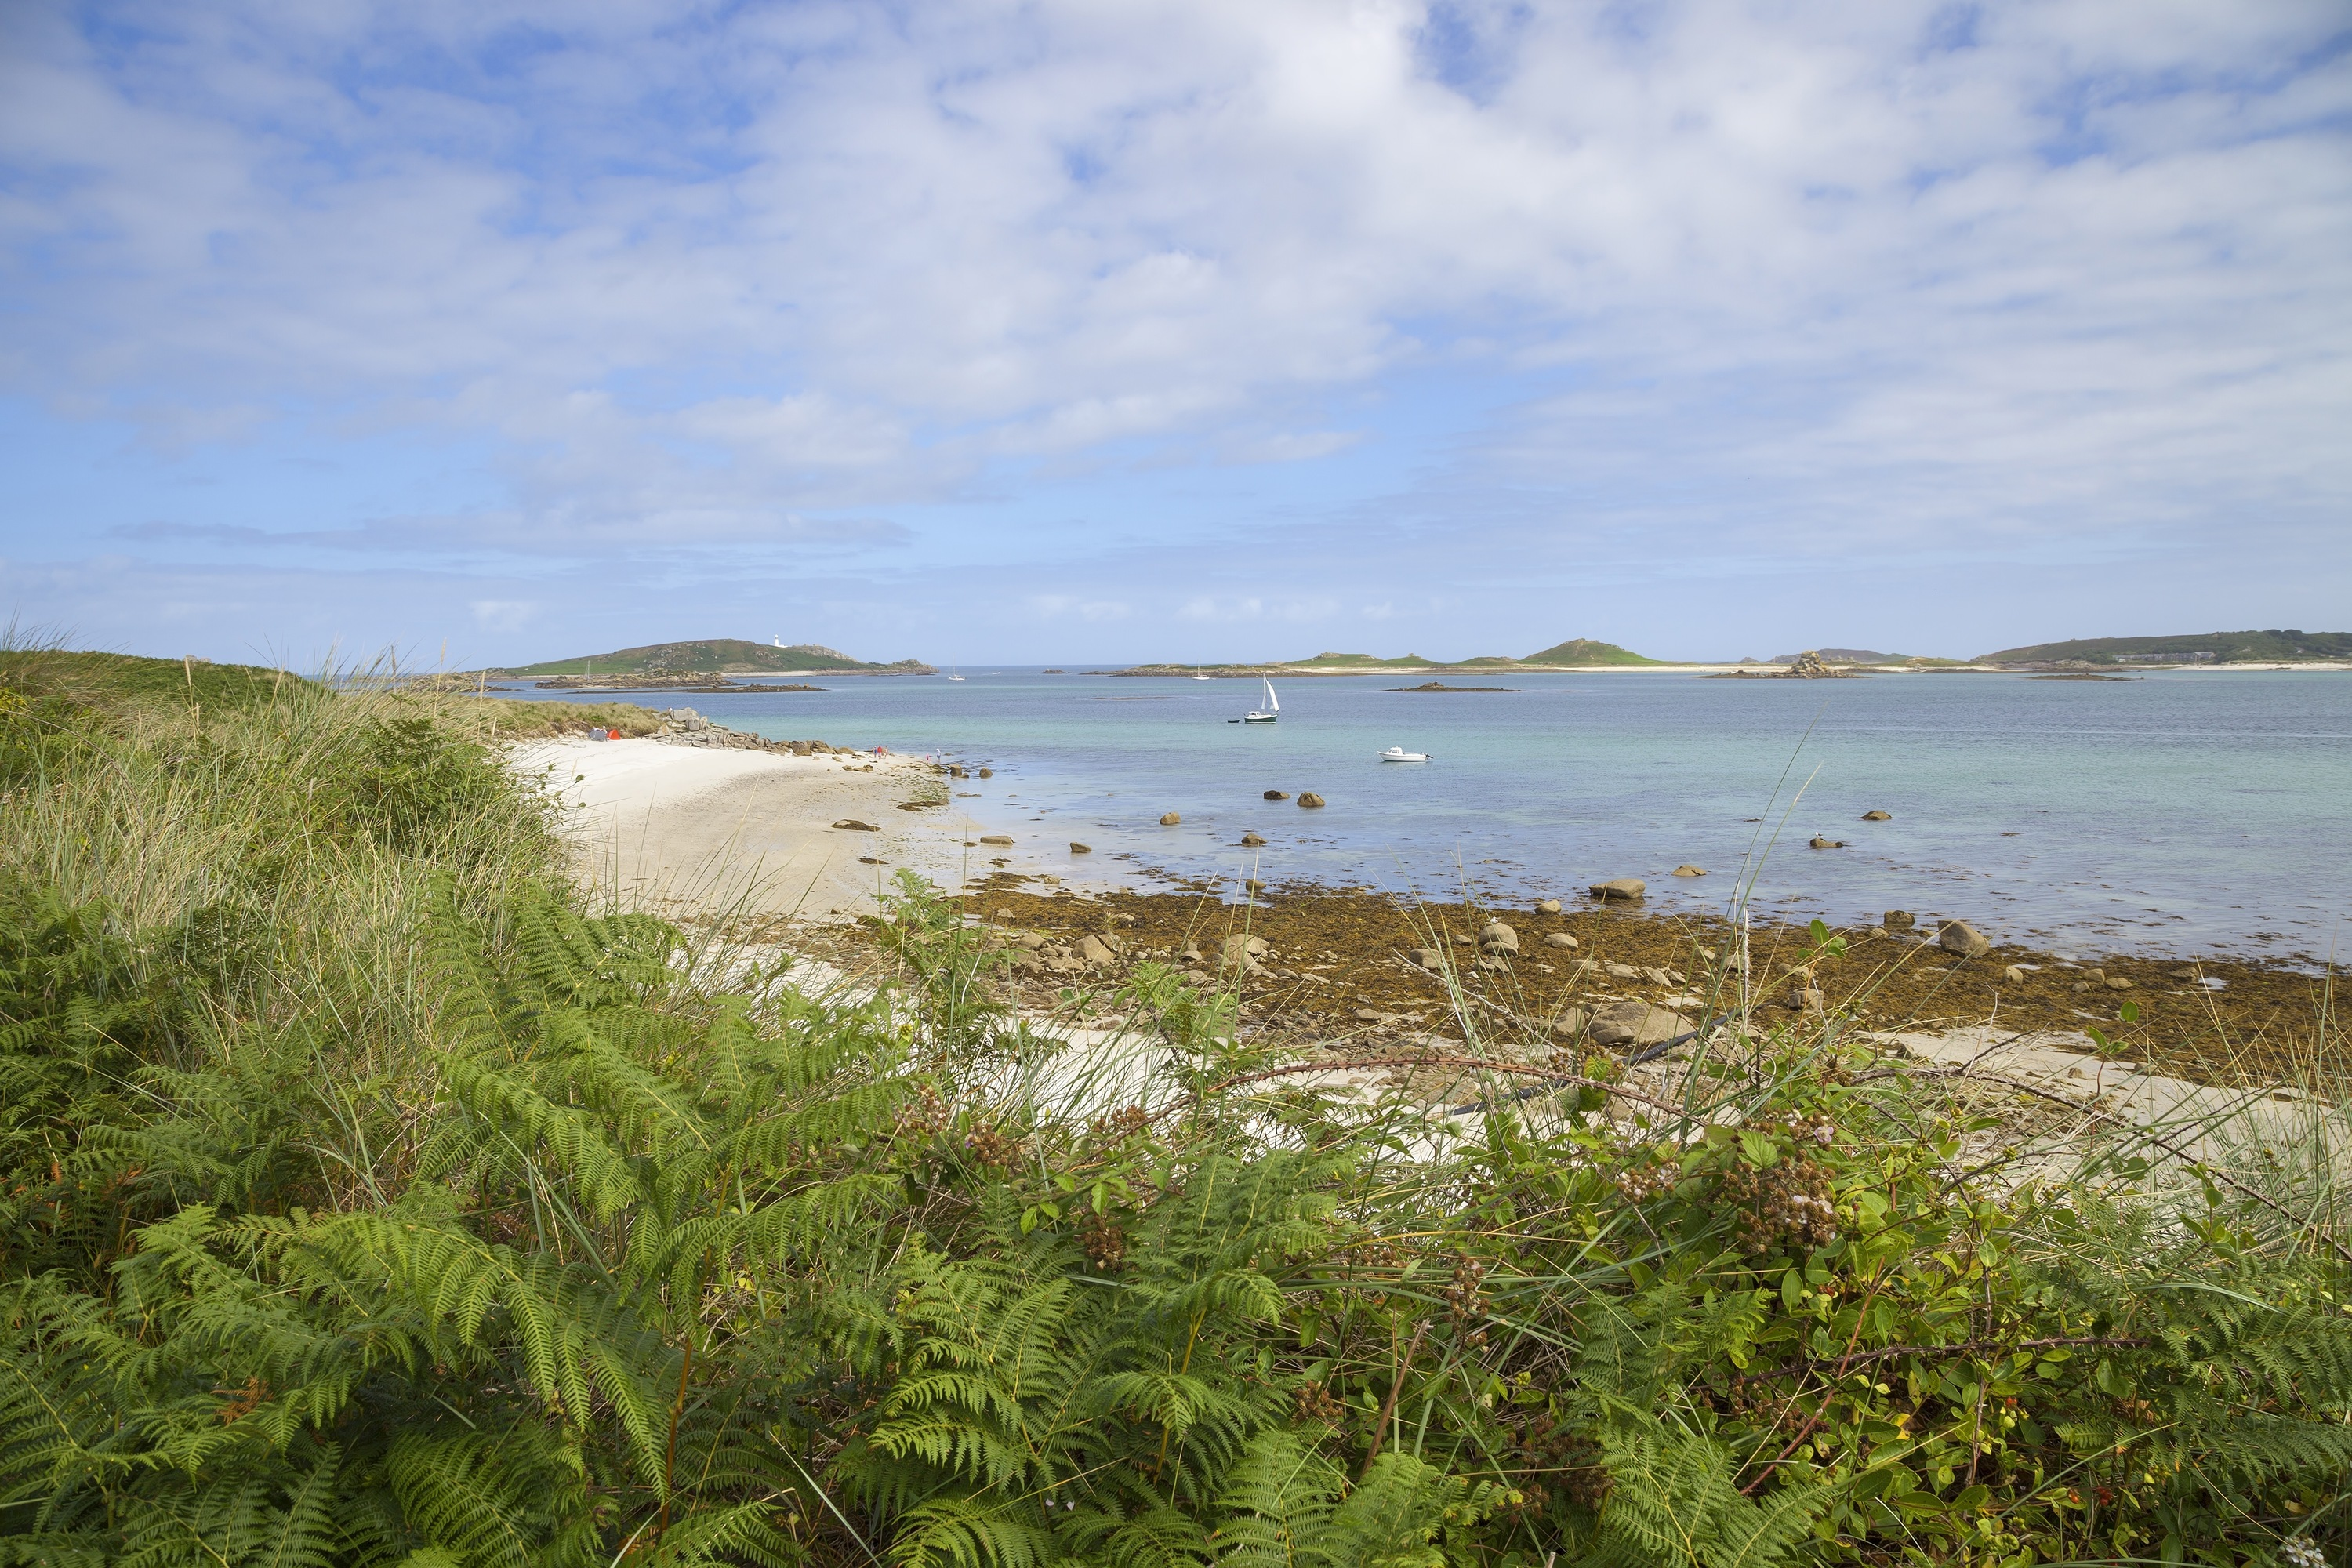 Pentle Bay, Isles of Scilly